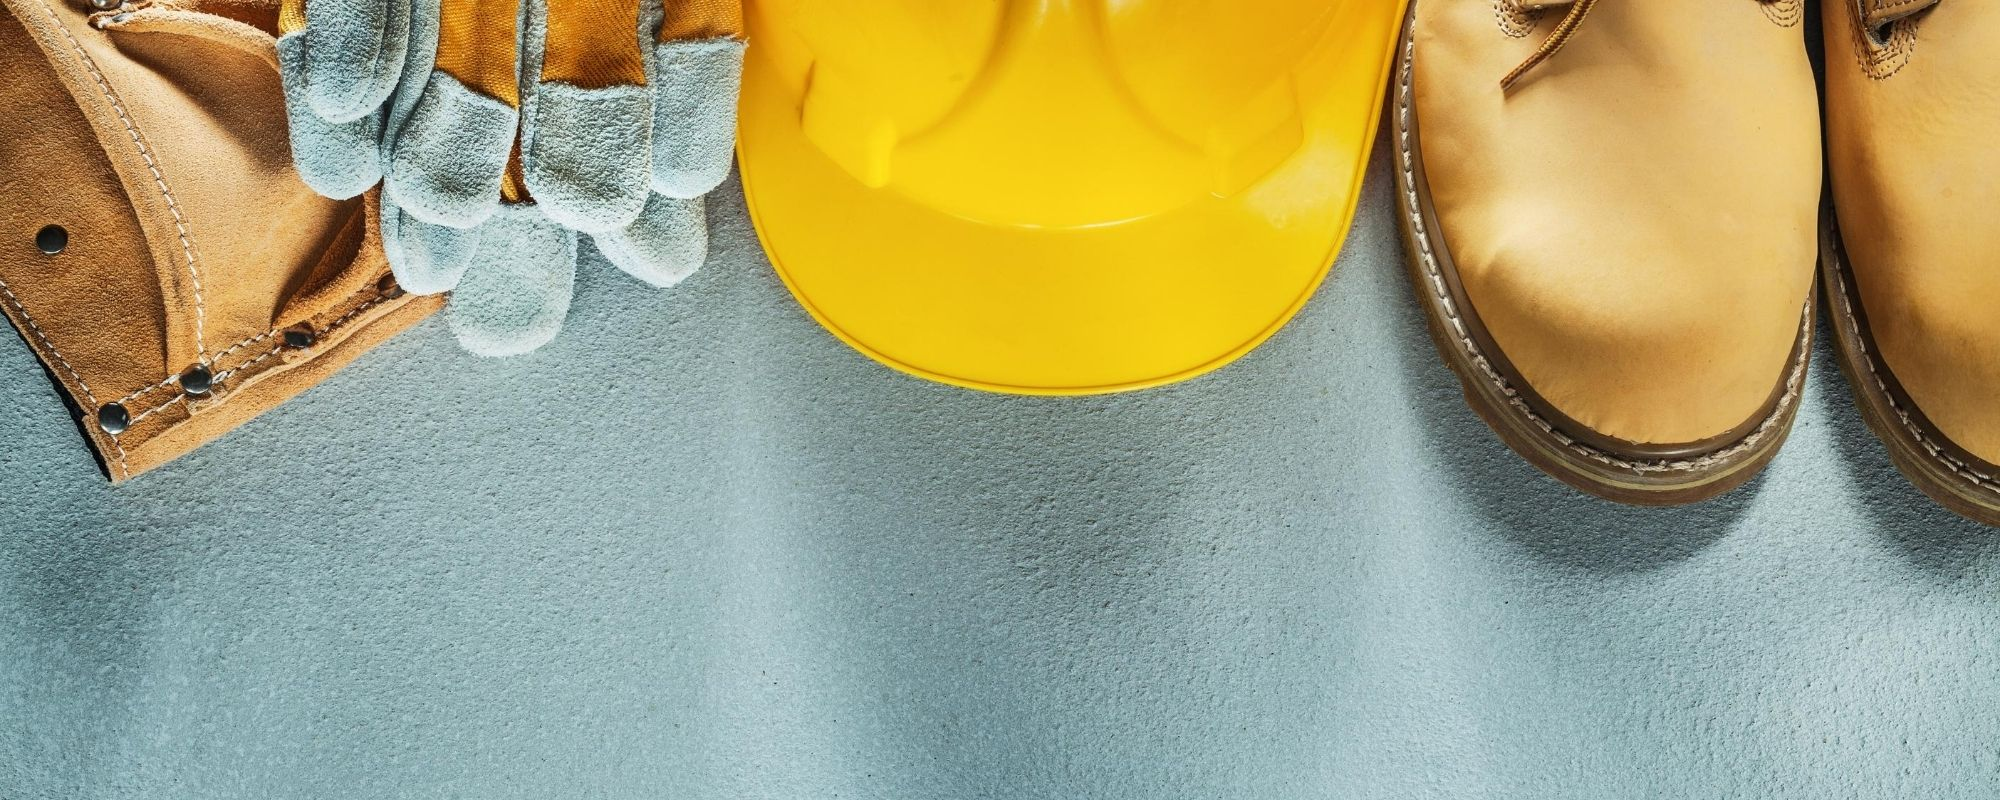 Safety Equipment on Blue Background